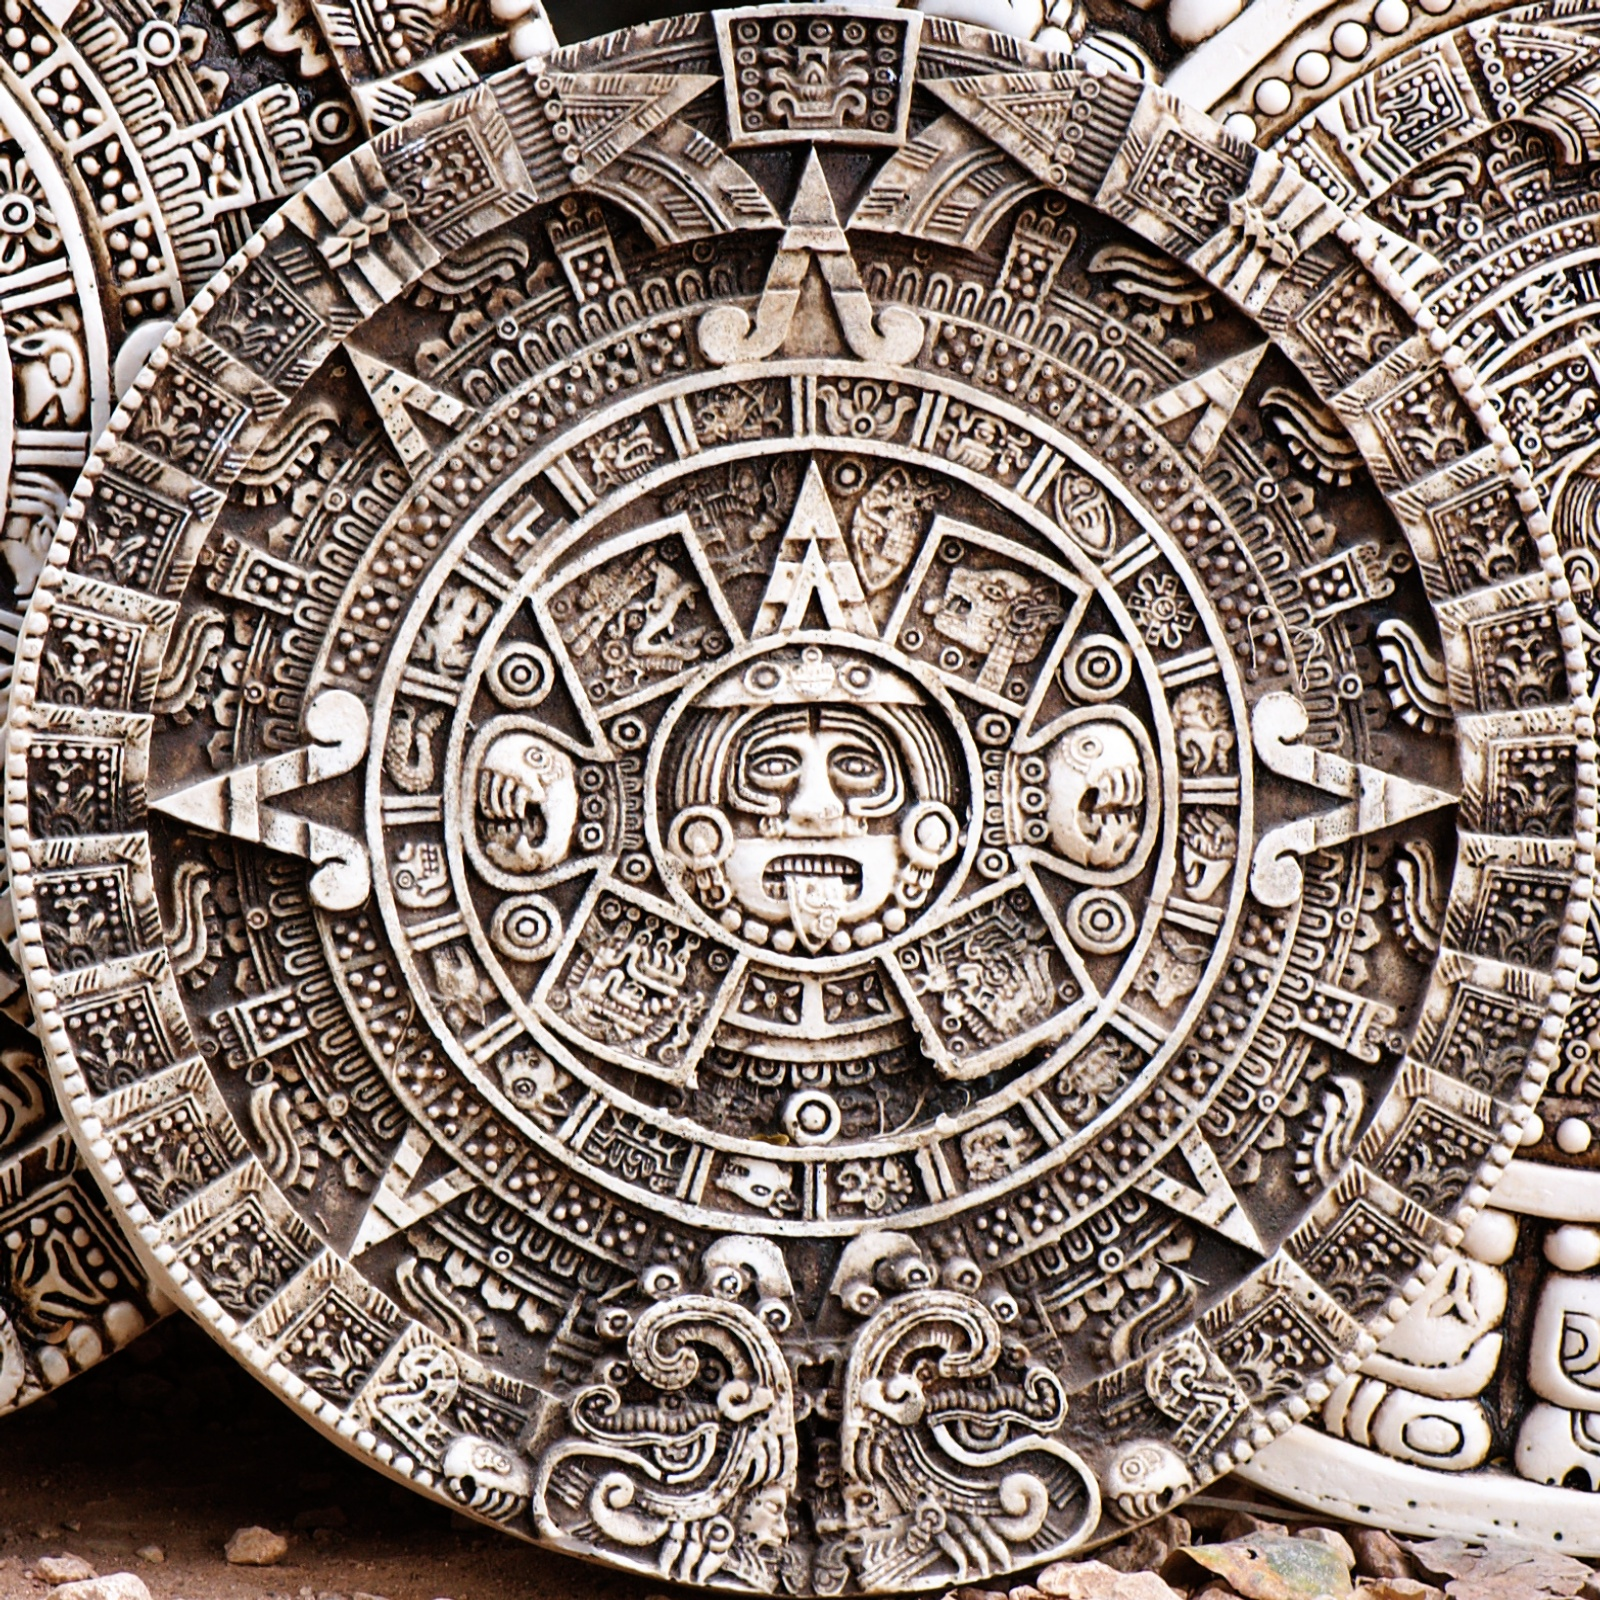 The Mayan Stars on emaze